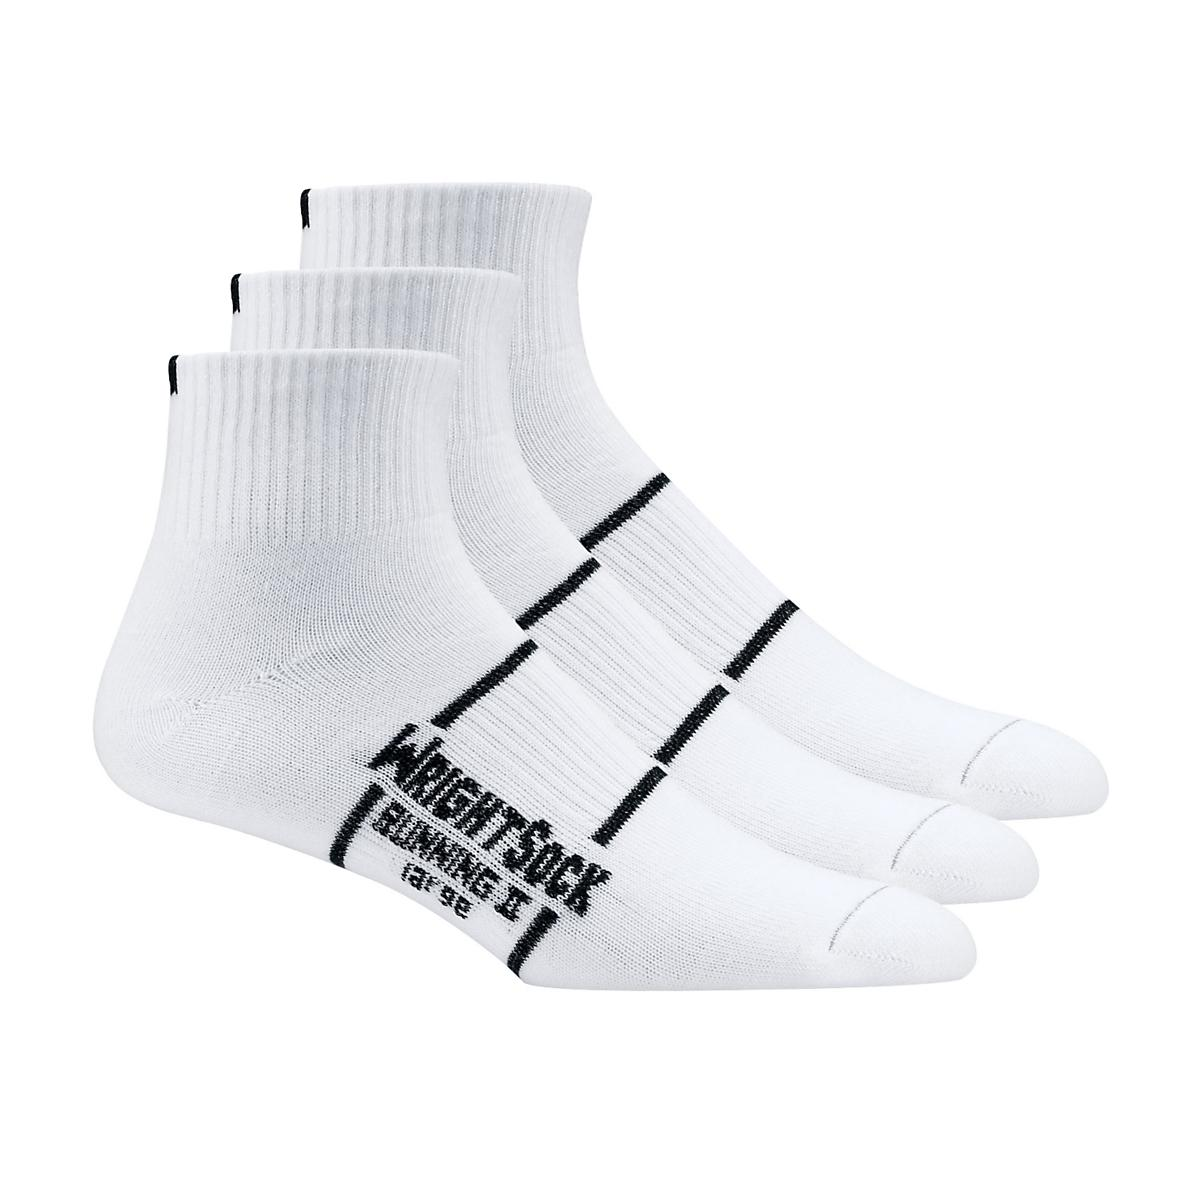 WrightSock�Double Layer Running II Qtr 3 pack